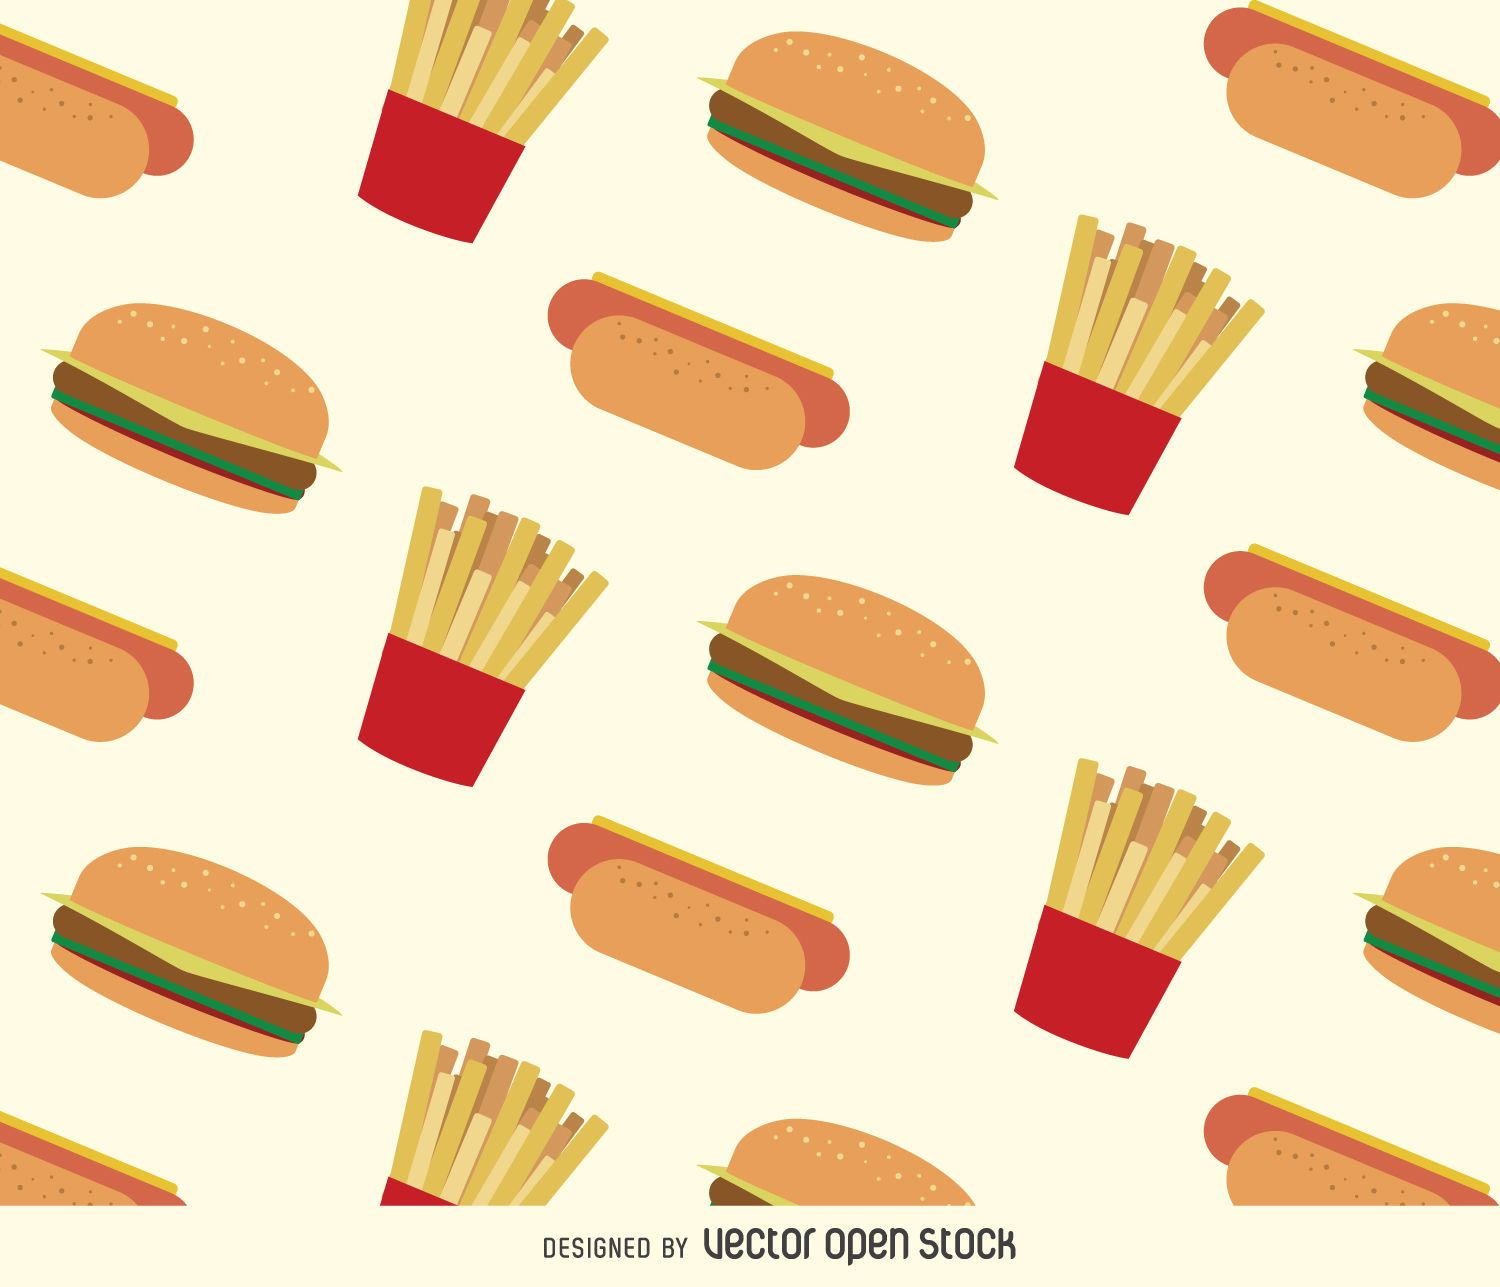 Hot dogs hamburgers and fries pattern